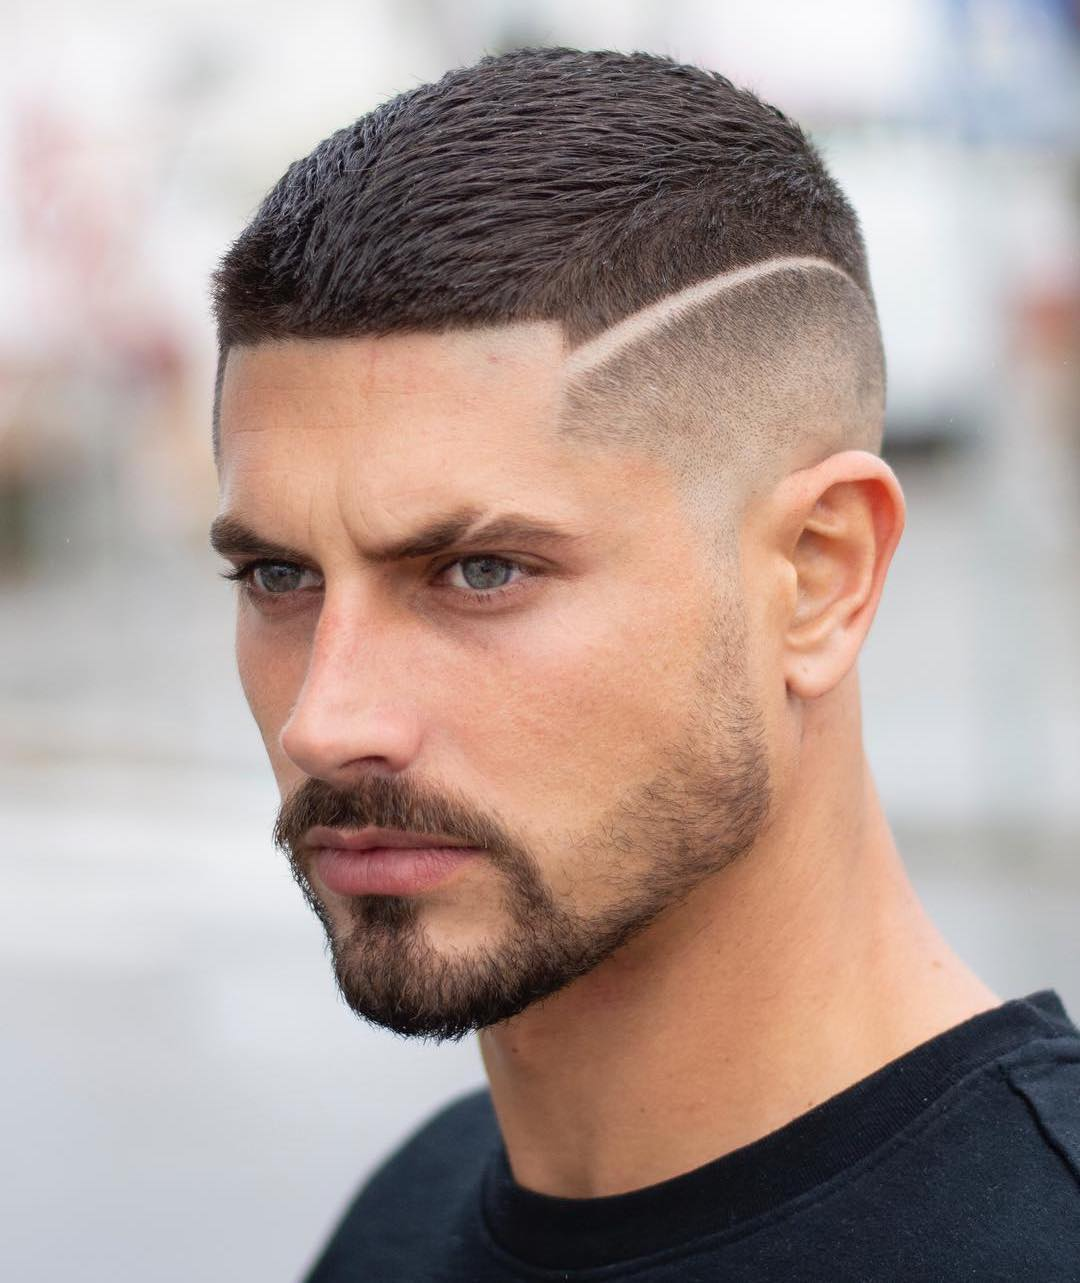 Taper Fade with Shaved Hairline